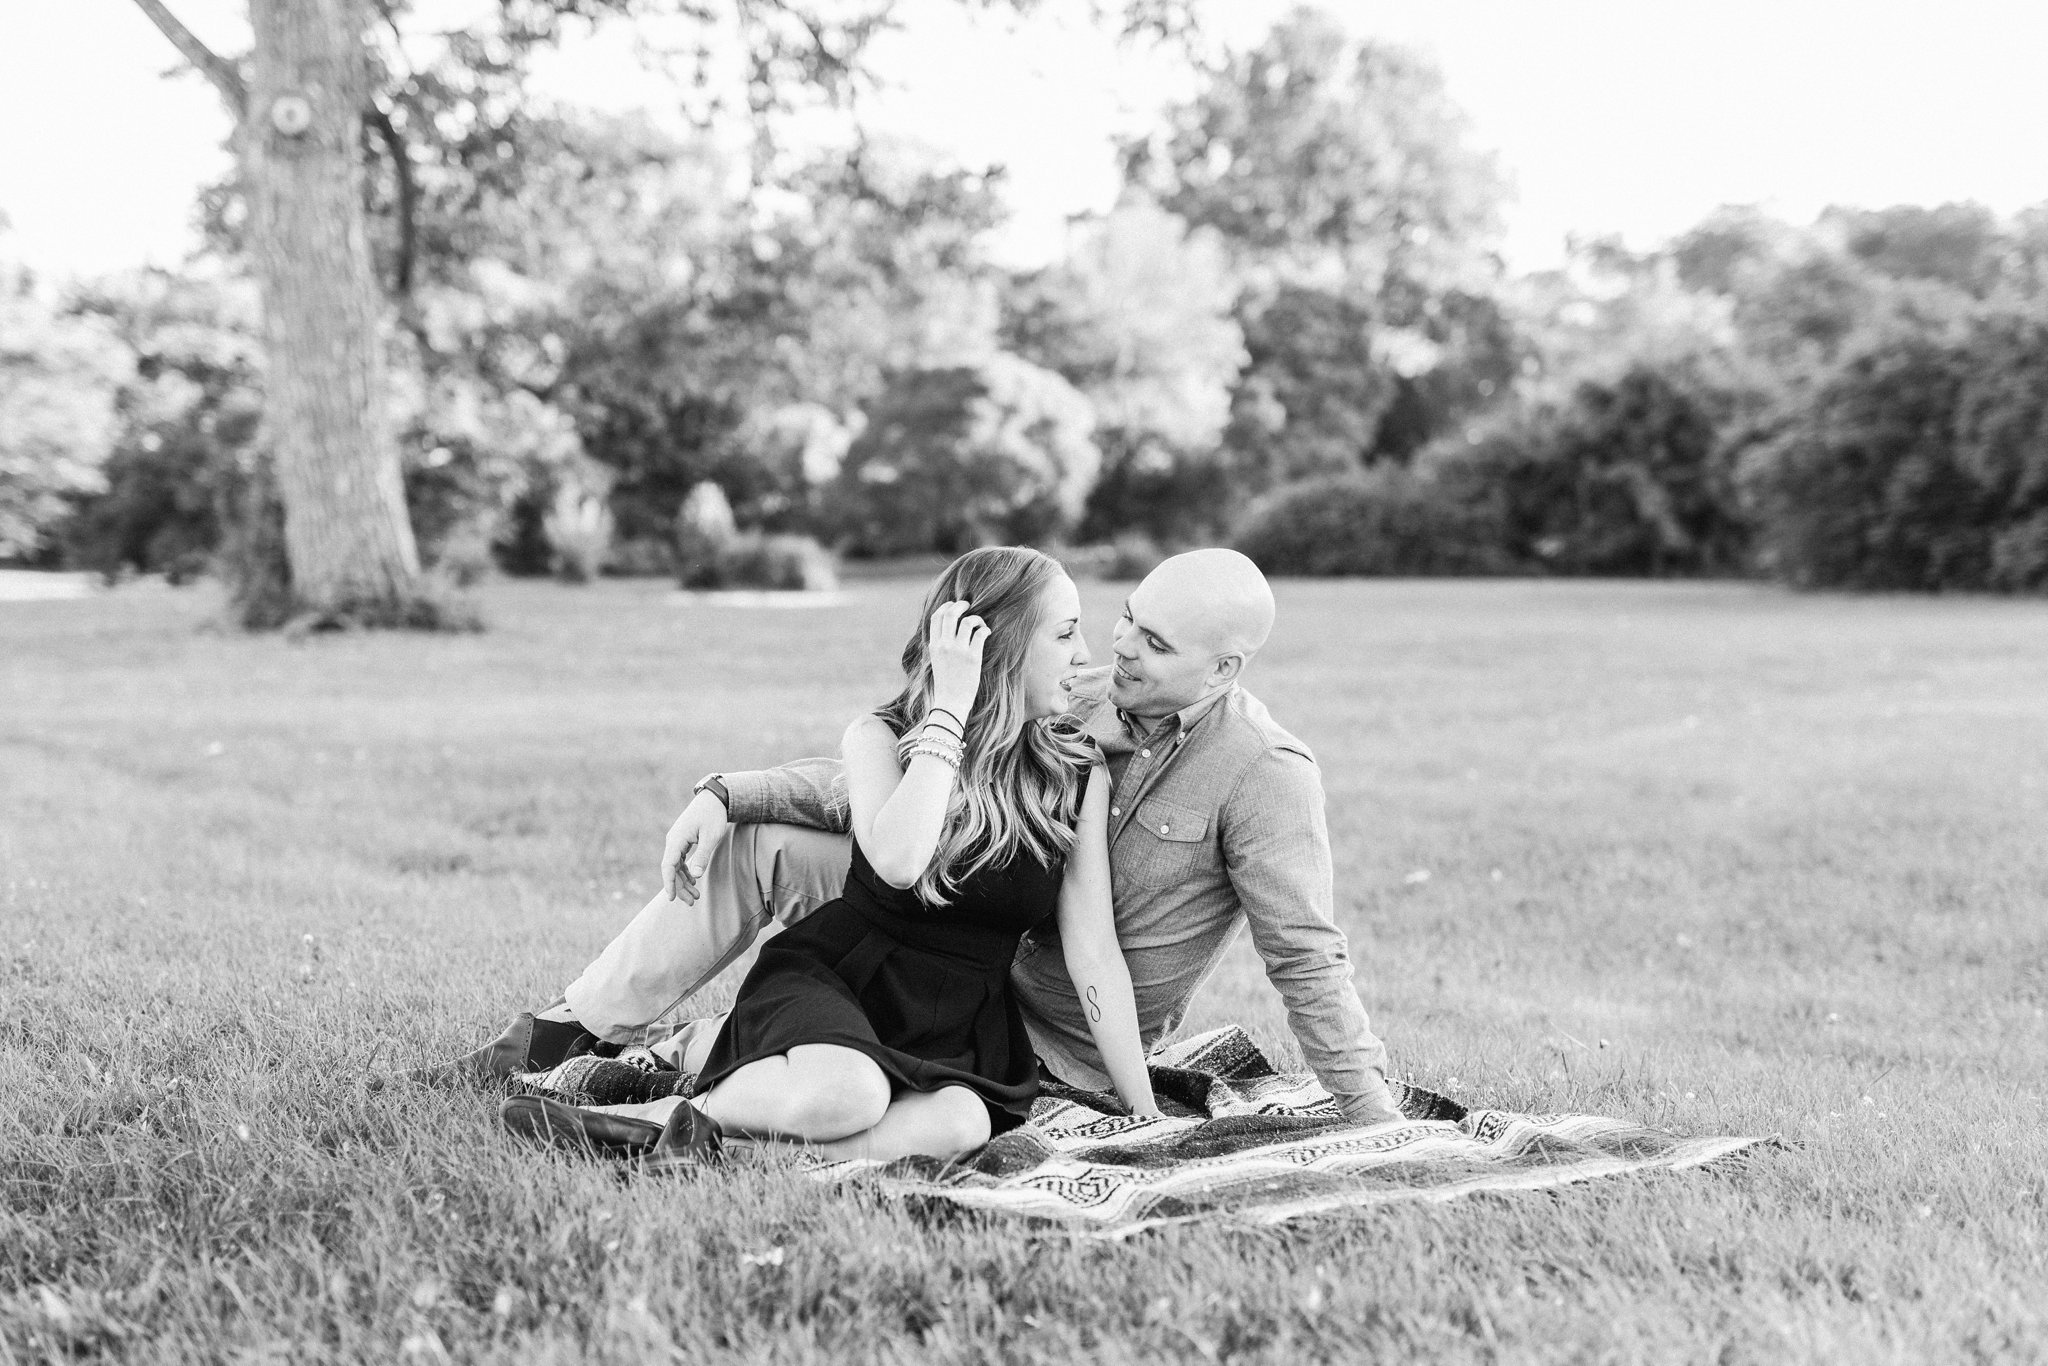 Picnic blanket, Engagement photos at Dominion Arboretum with a small dog, little black dress engagement session, pink collared shirt, Amy Pinder Photography, Ottawa wedding photographer, light and airy wedding photographer